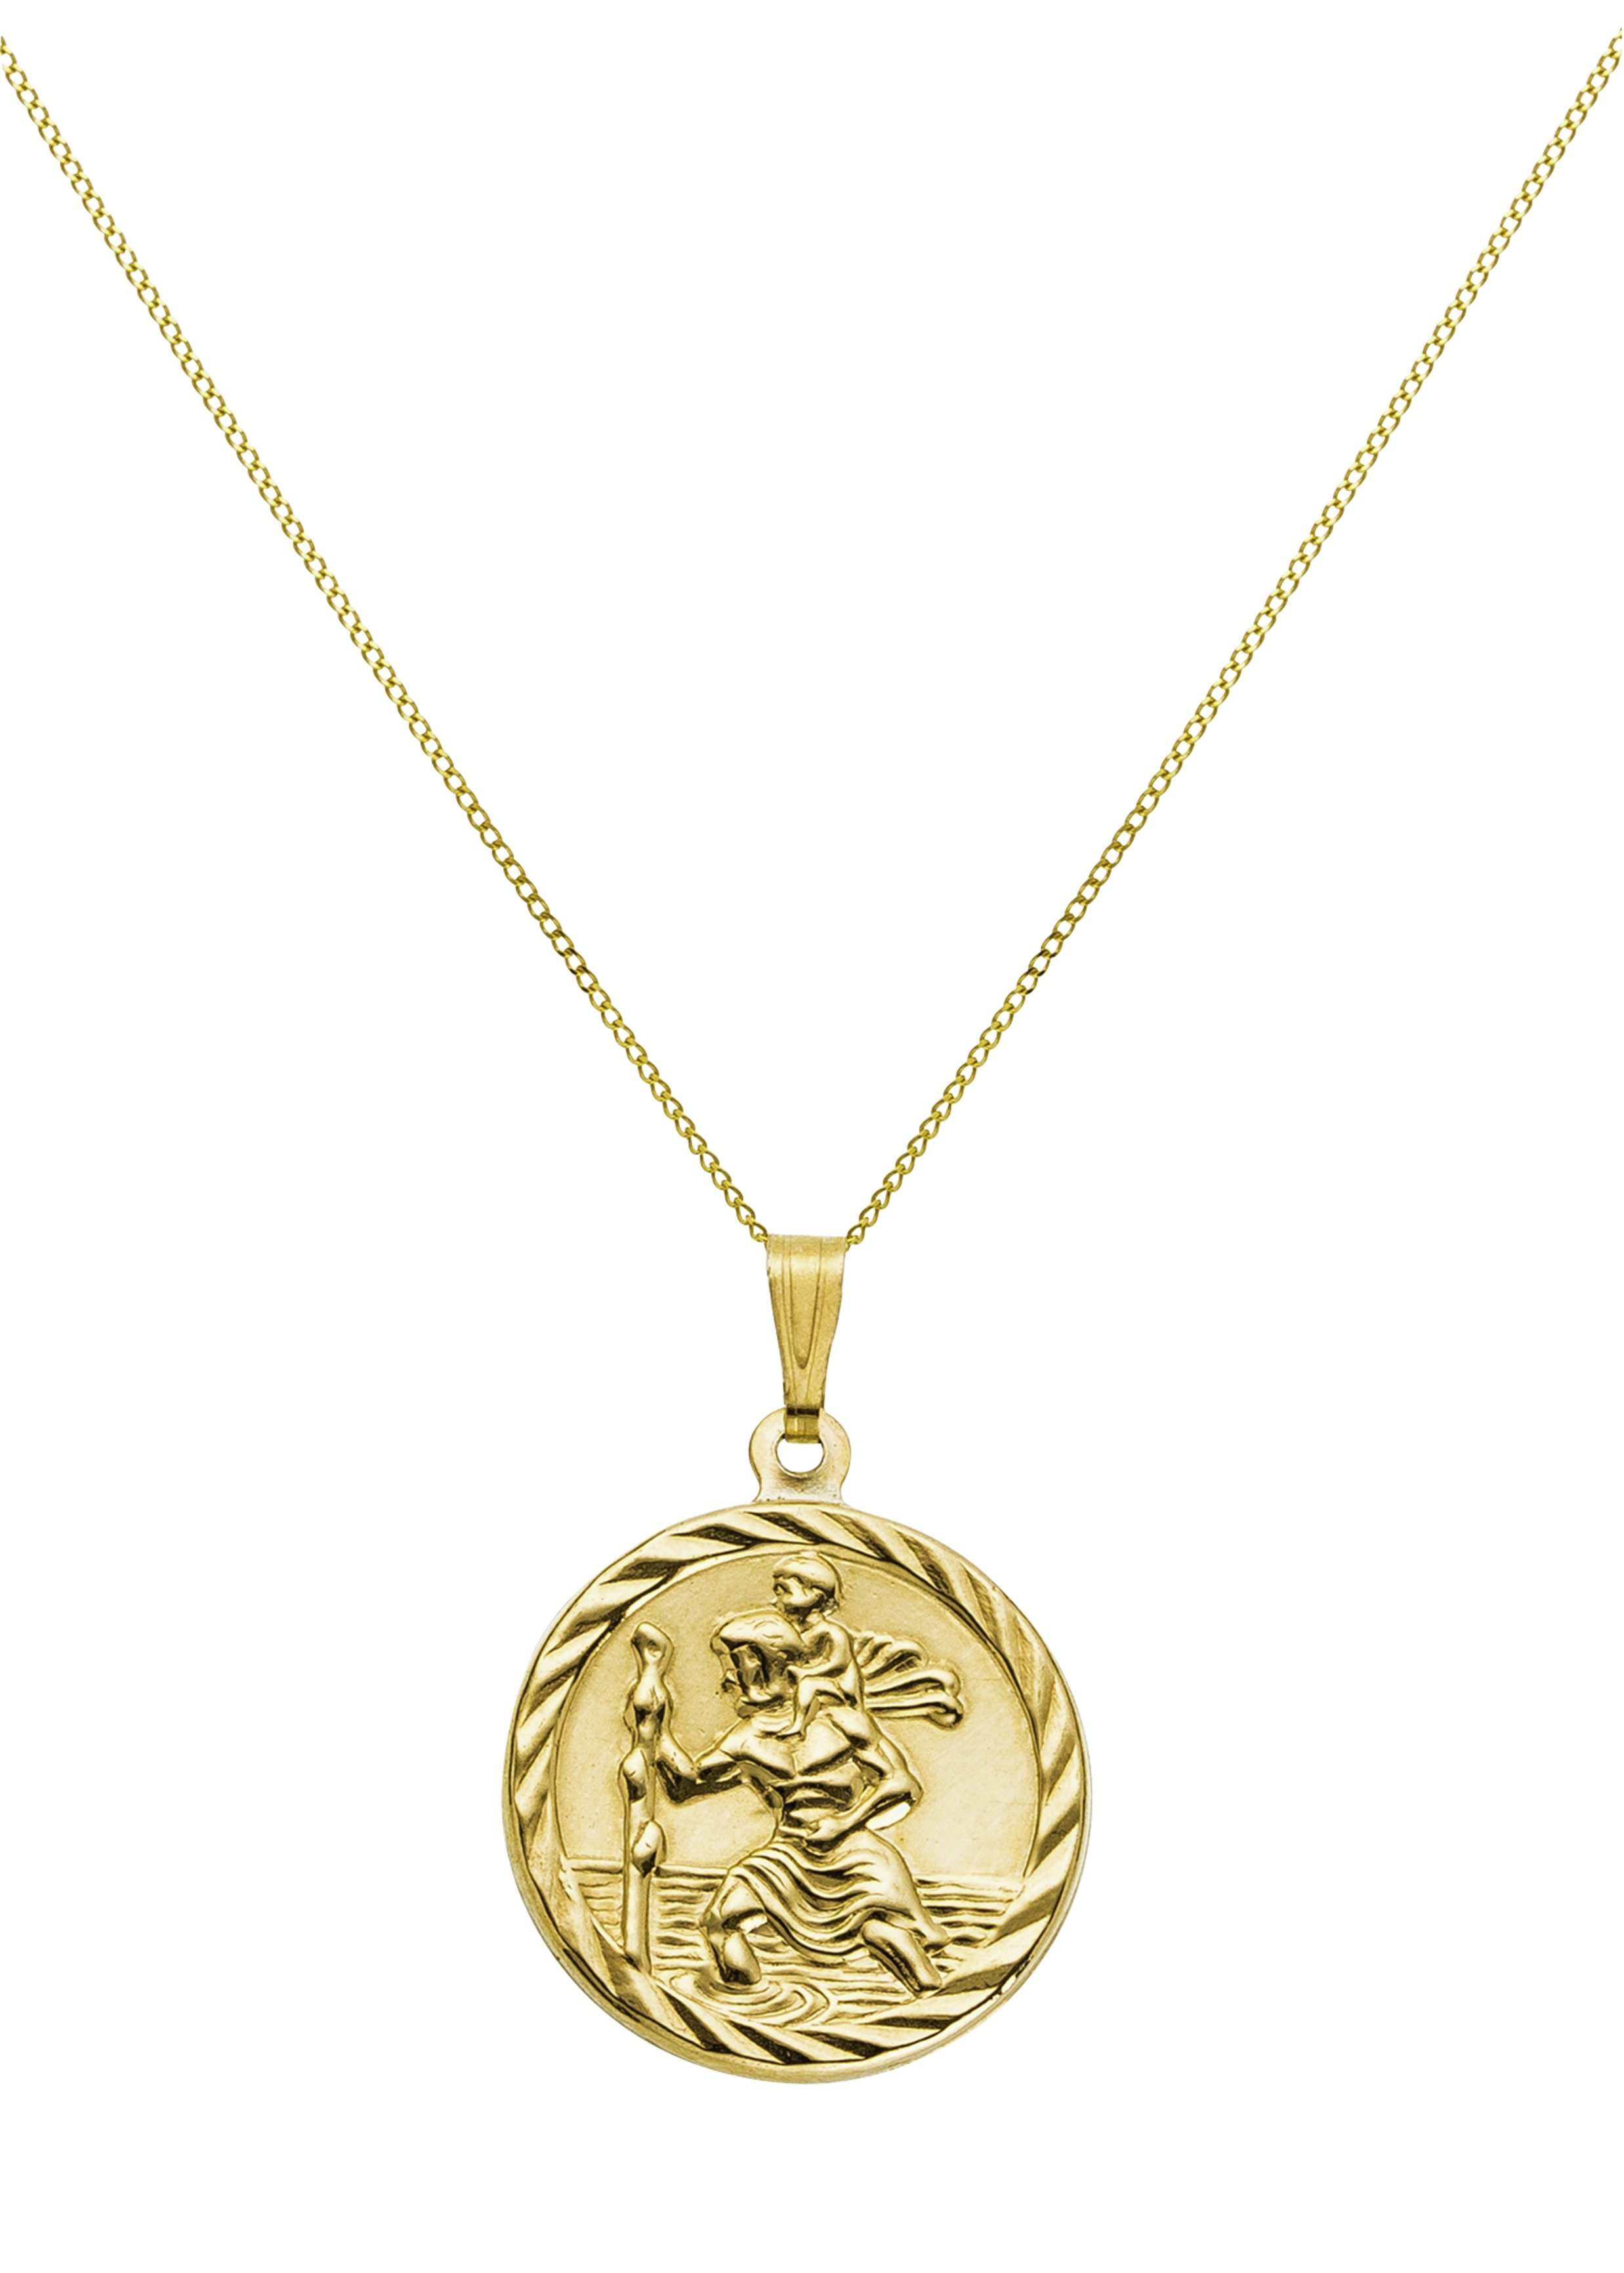 9 Carat Gold - Double Sided Rope Edged St. Christopher Pendant.